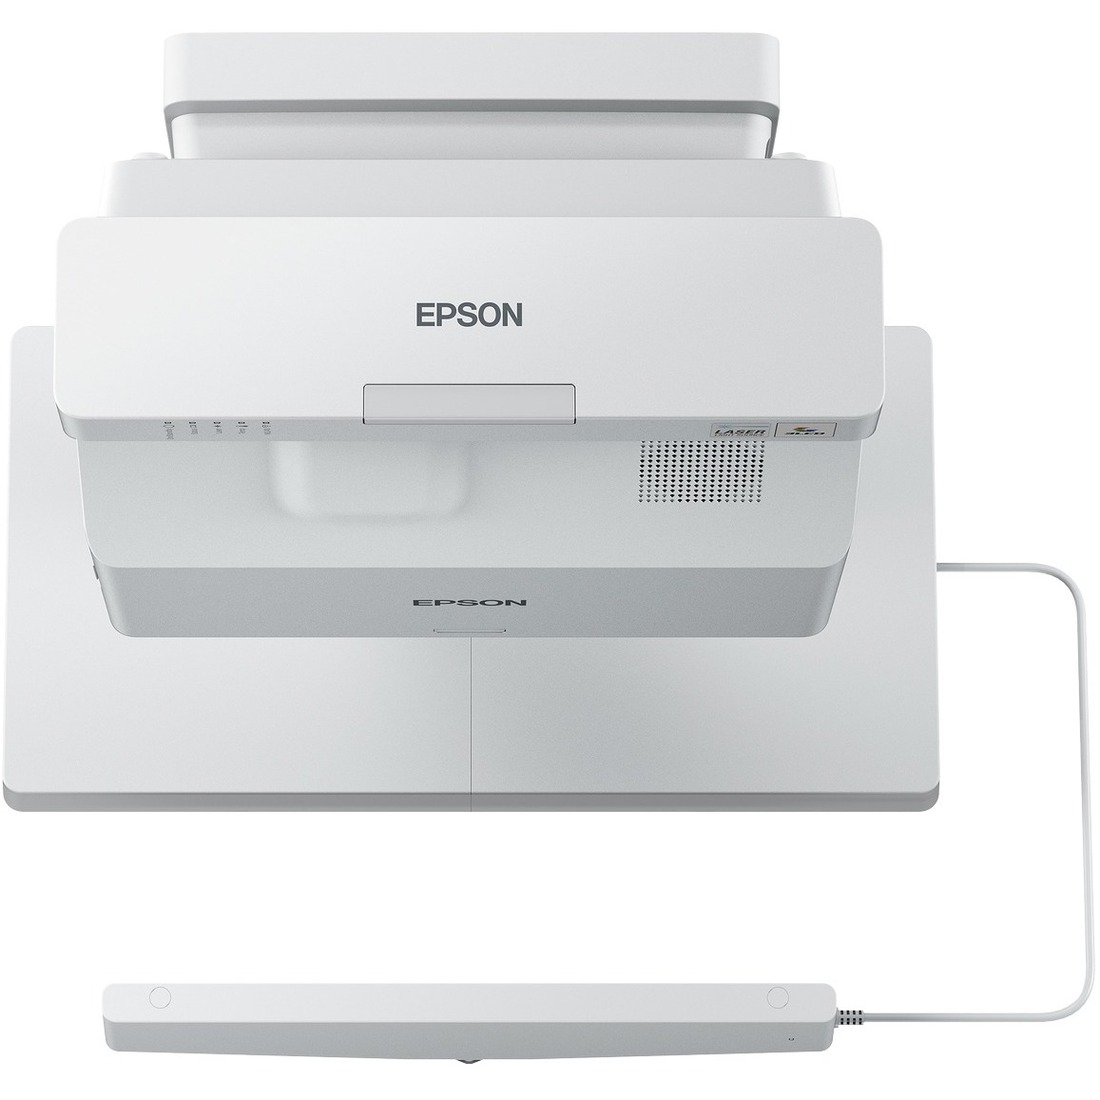 Epson PowerLite 720 Ultra Short Throw 3LCD Projector - 4:3_subImage_1